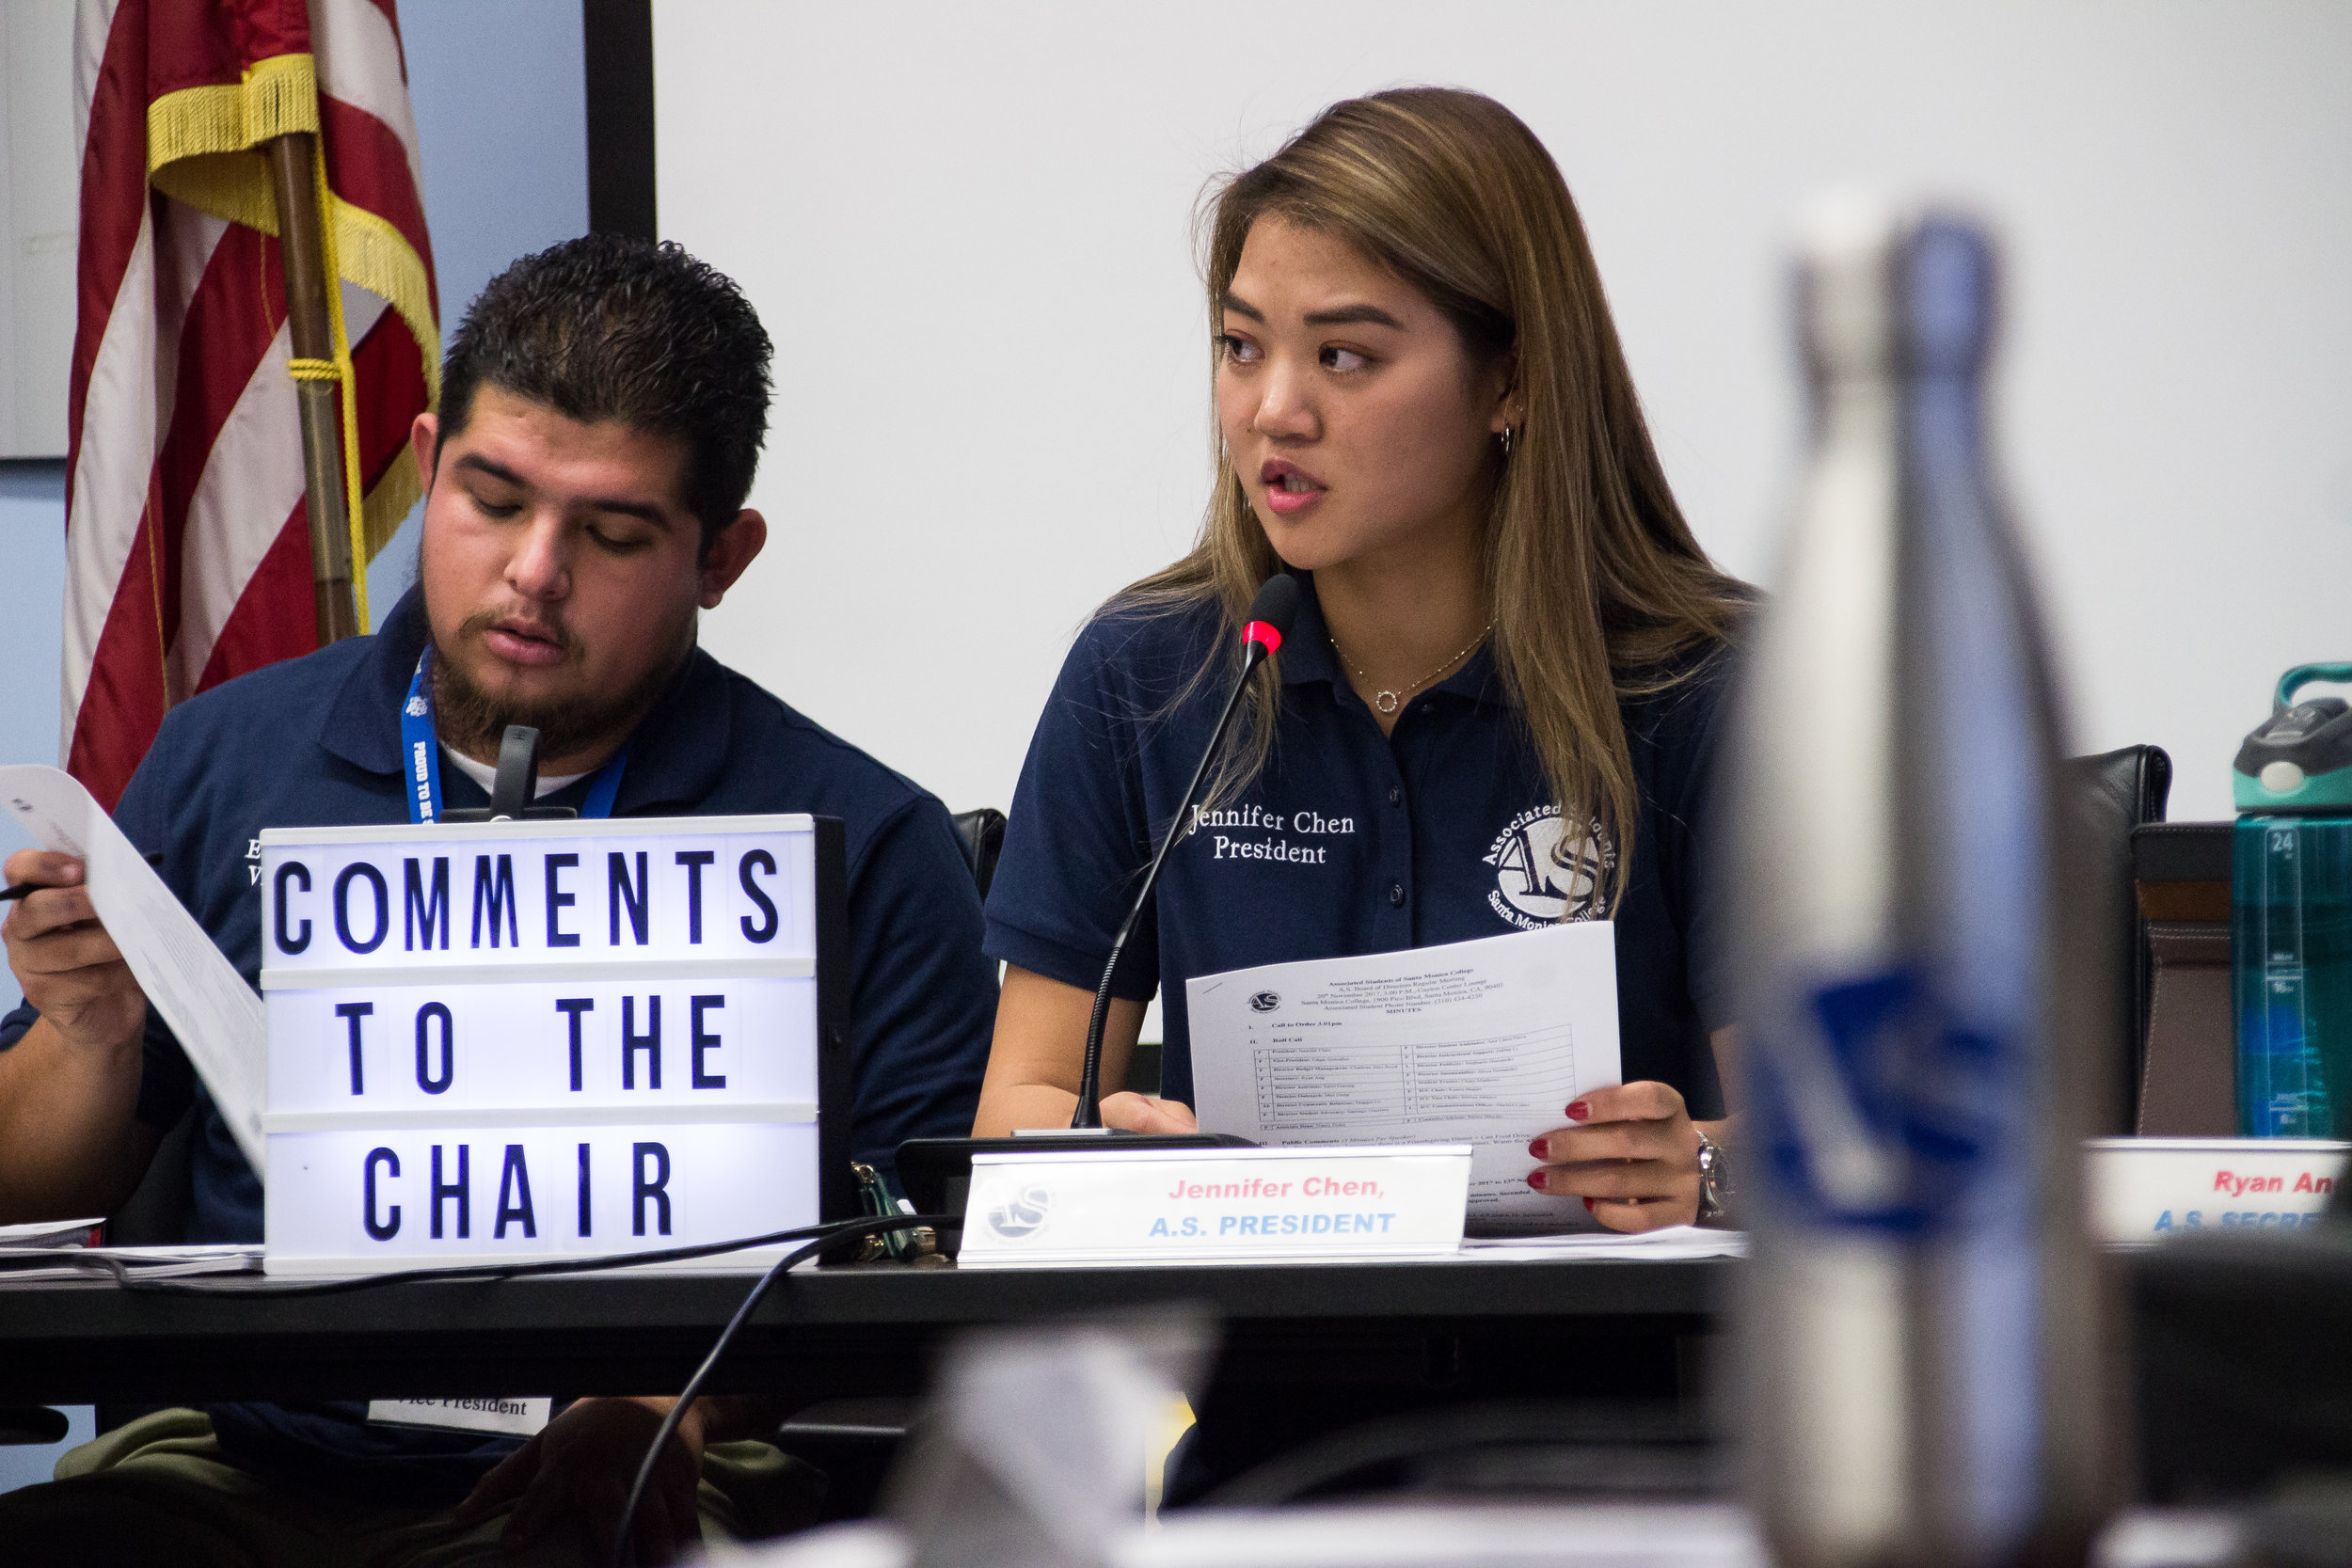 Edgar Gonzales, Associated Students Vice President, (left) and A.S. President, Jennifer Chen (right), discuss the proposal to build a Gender Equity Center in the Cayton Center in place of a portion of the A.S. Computer Lab on Monday, Nov. 27, 2017 in the Cayton Center at Santa Monica College.(Photo By: Marisa Vasquez)